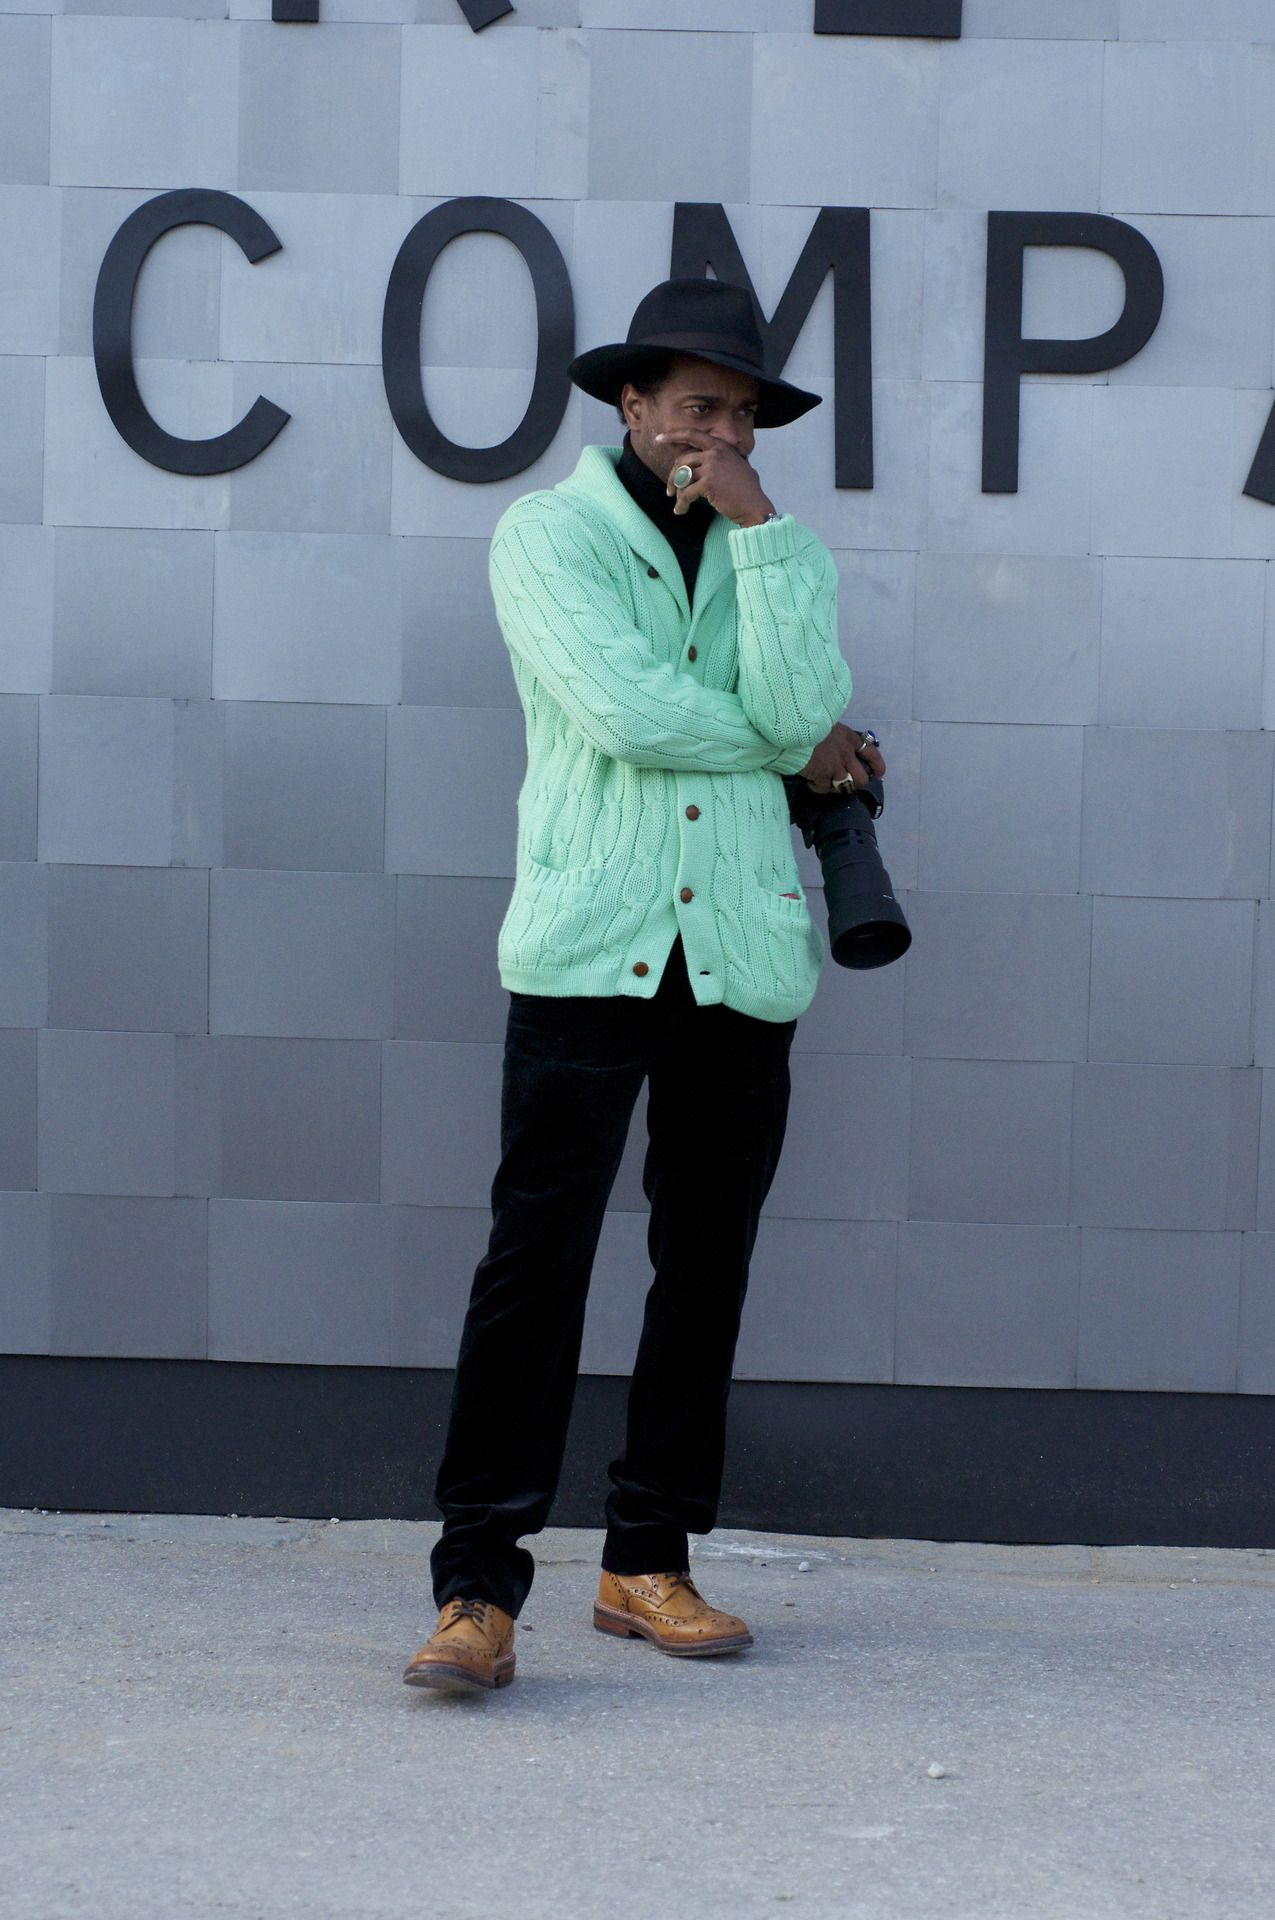 beforeeesunrise:  He is also a photographer. Nice Pitti Uomo 852014 Florence,Italy